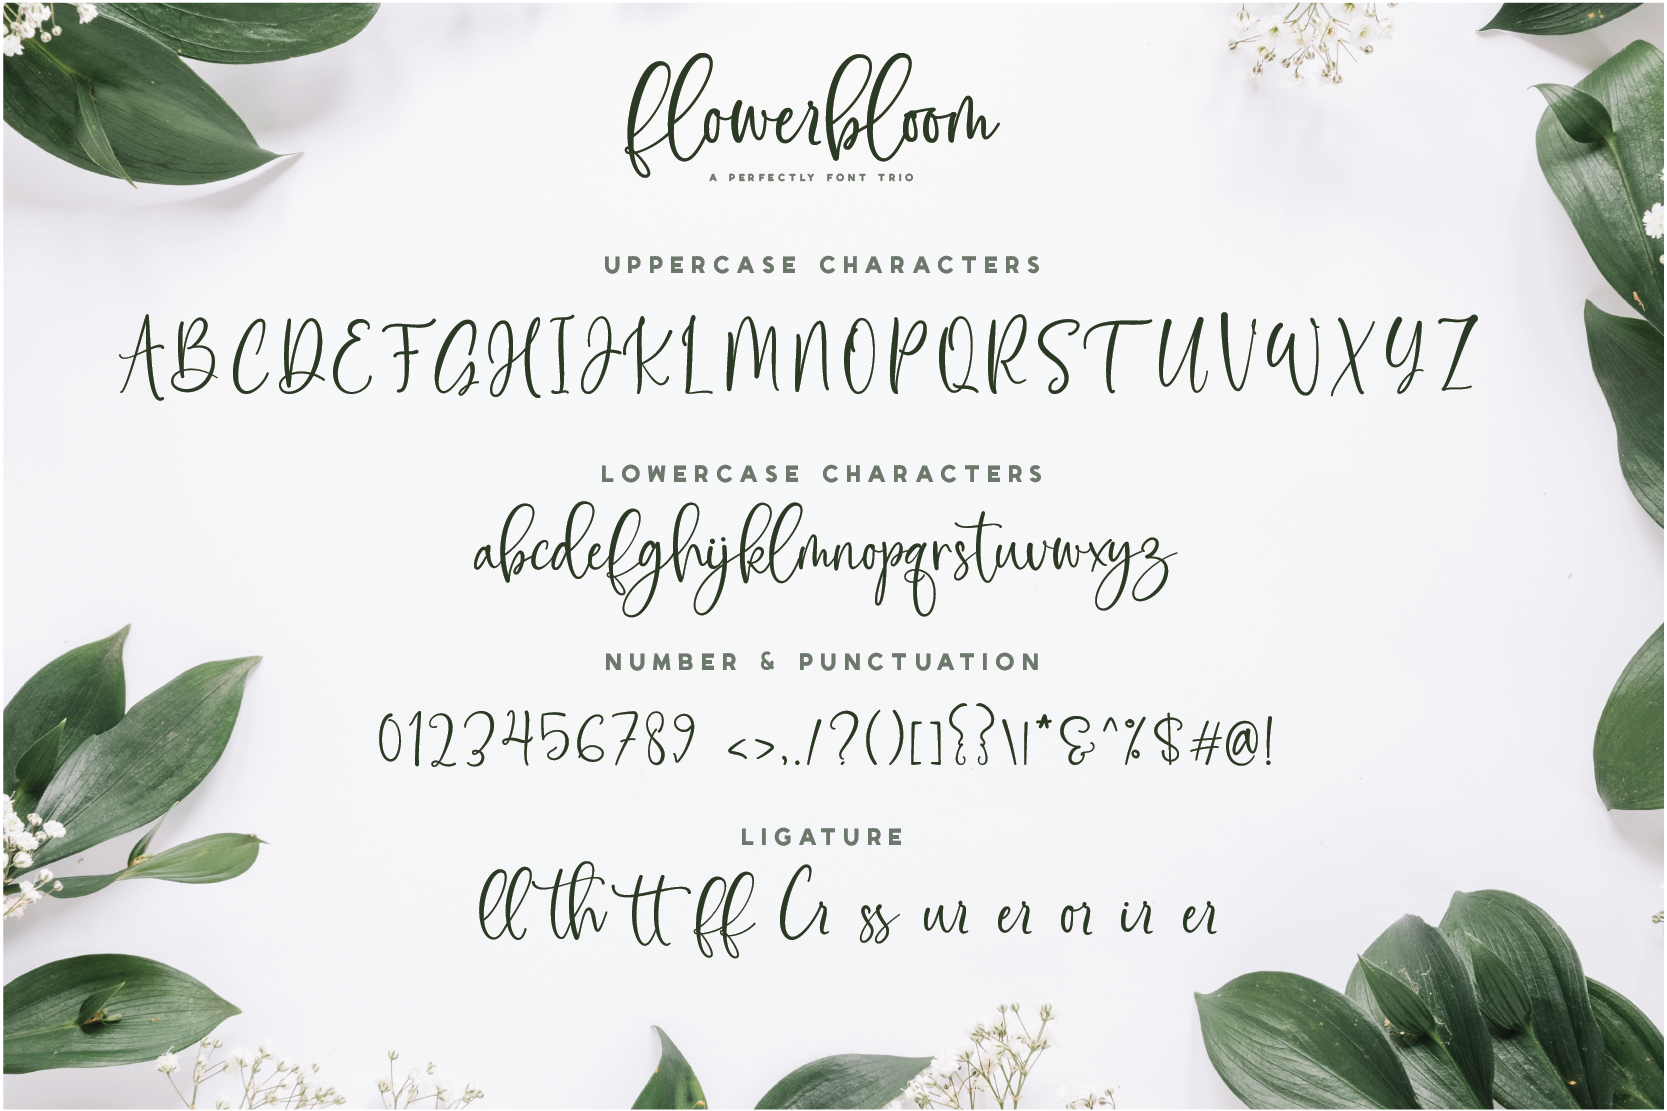 Flowerbloom Font Trio example image 12